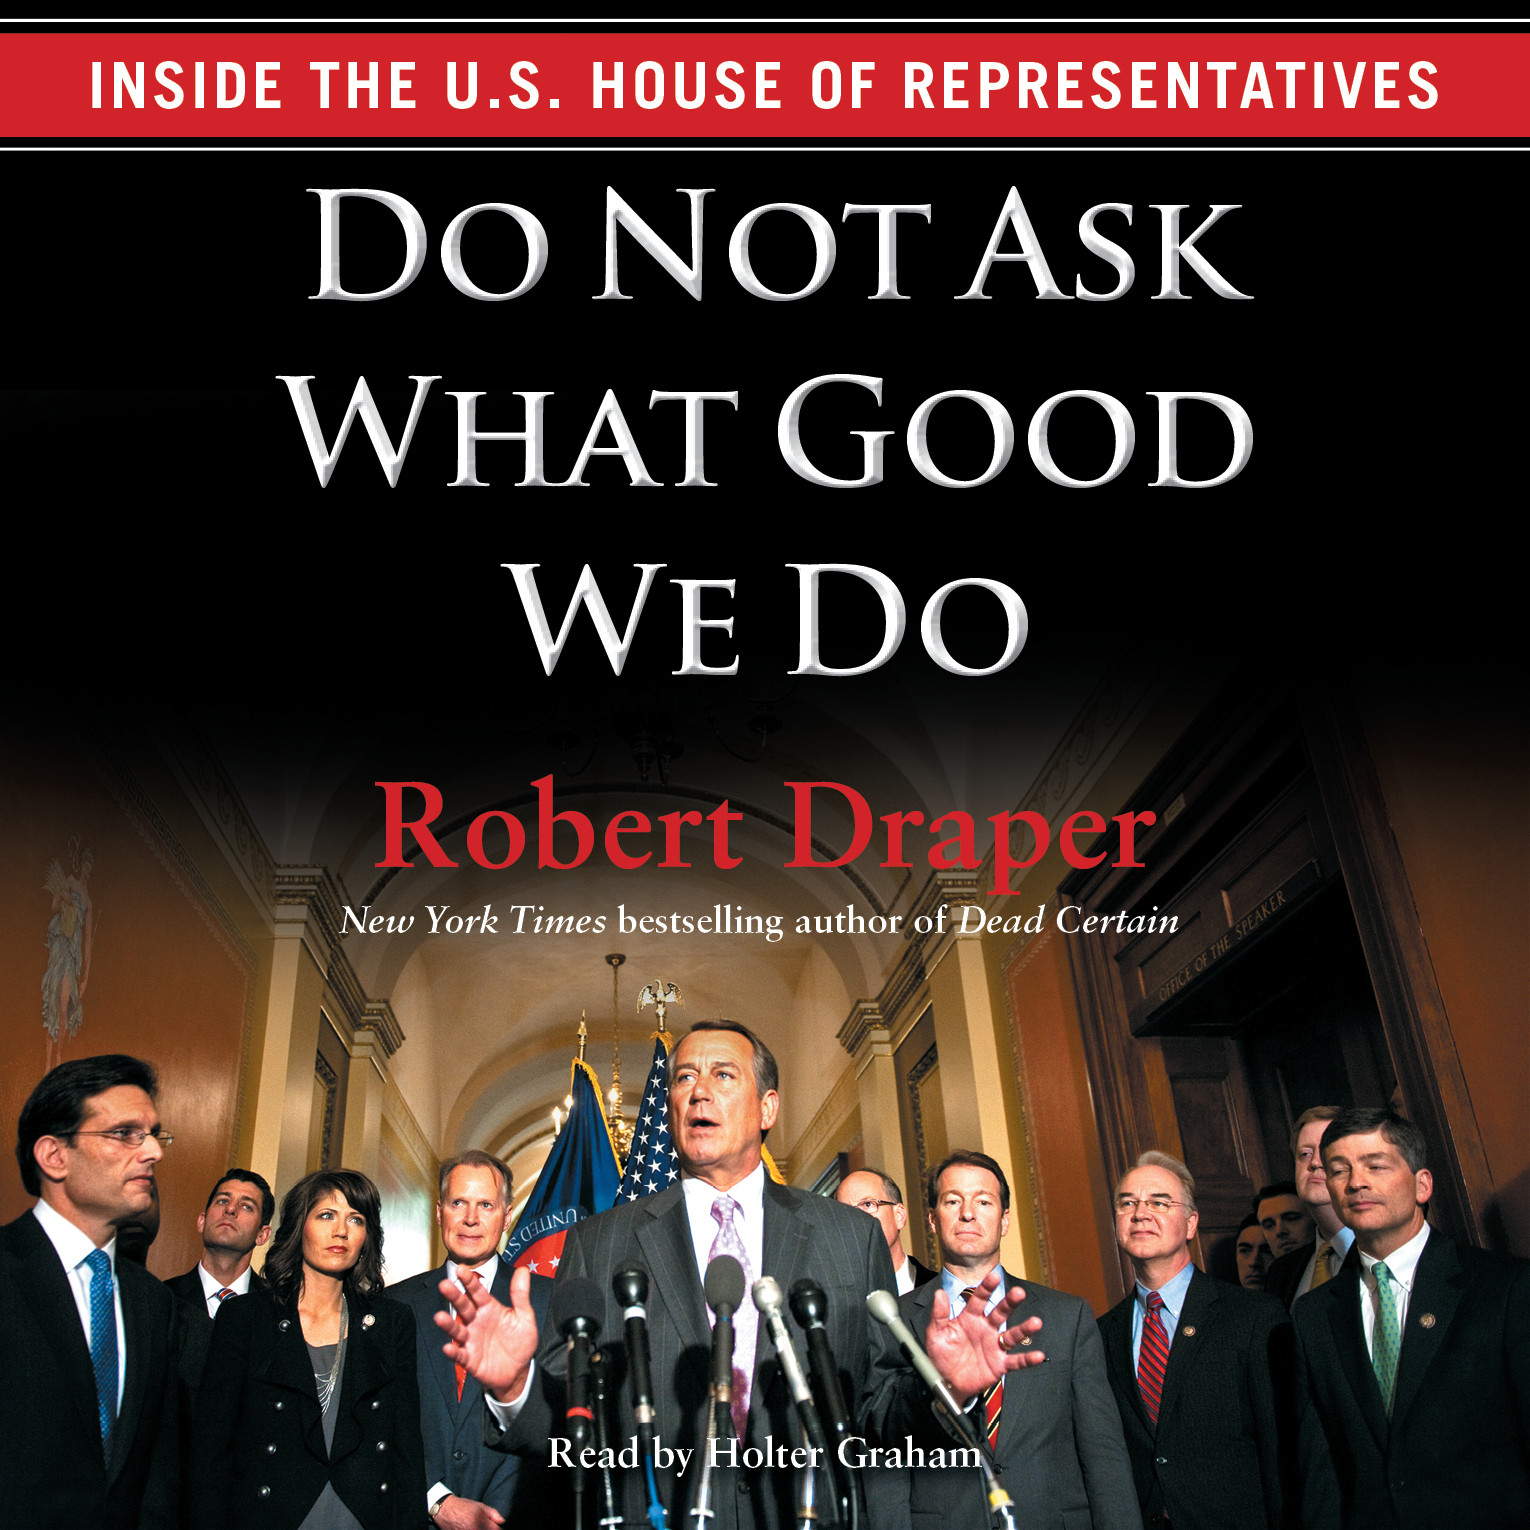 Printable When the Tea Party Comes to Town: Inside the House of Representatives' Most Combative, Dysfunctional, and Infuriating Term in Modern History Audiobook Cover Art